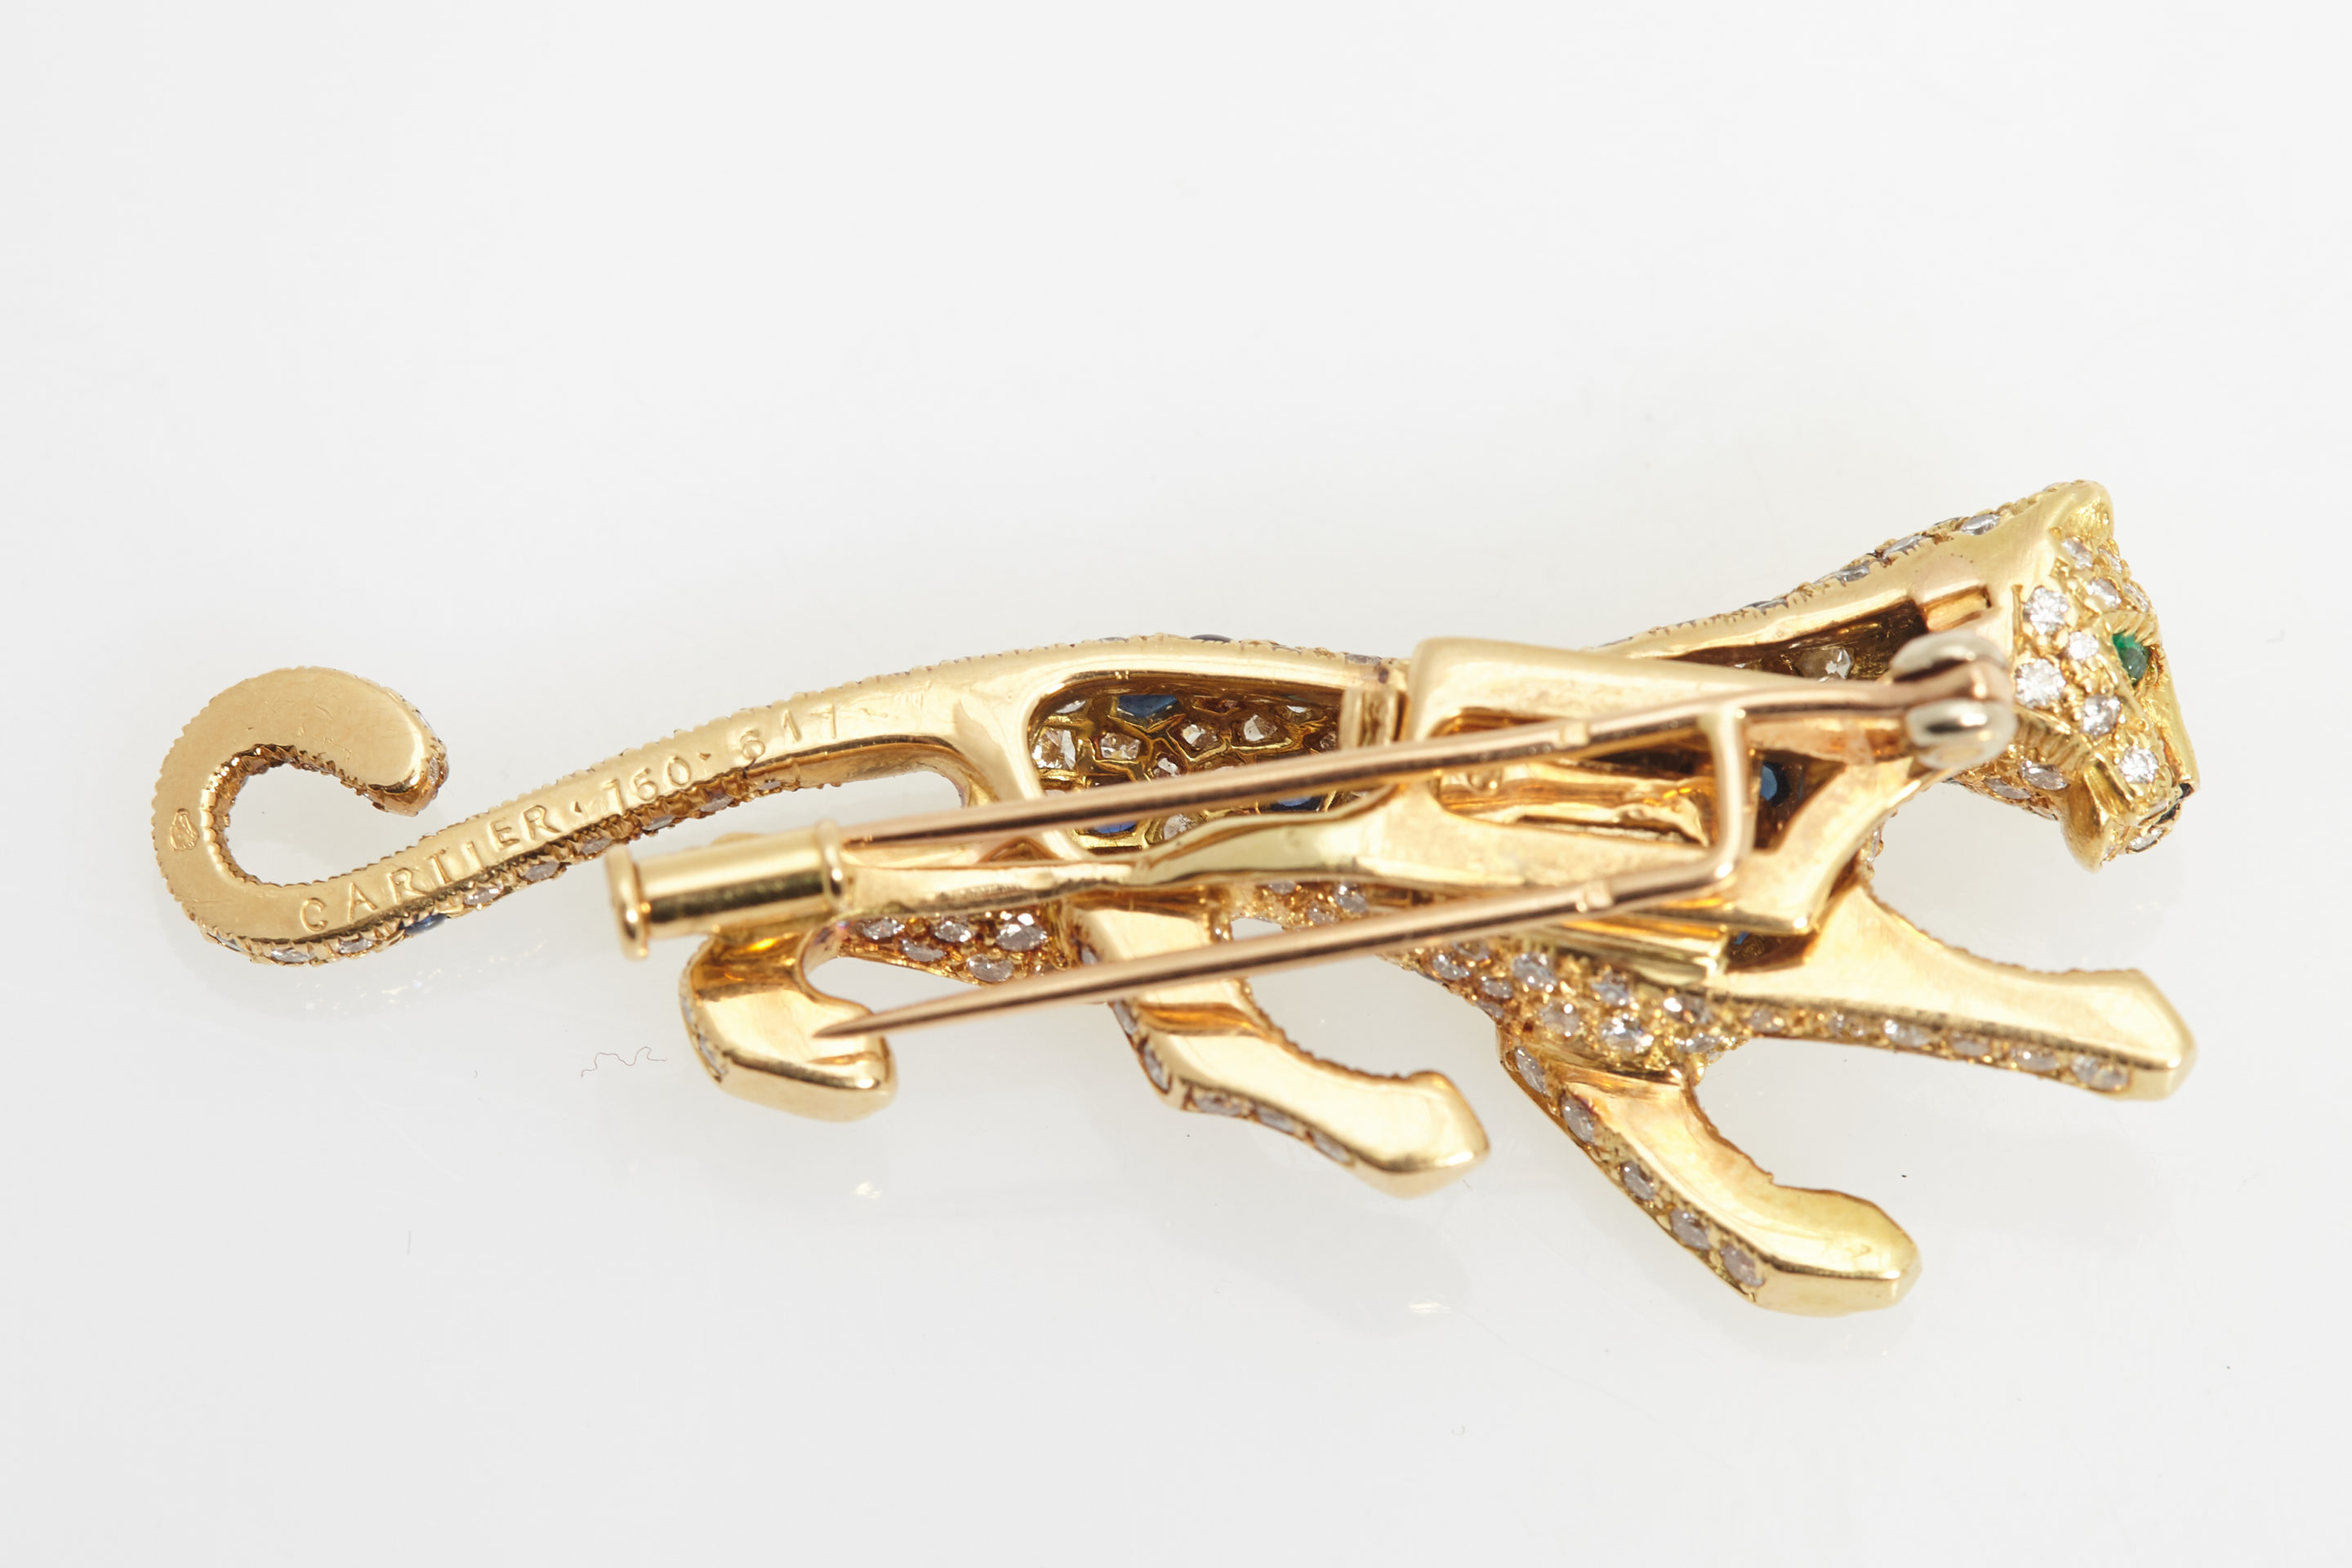 pins cartier brooch and bird listings jewelry vintage gold diamond brooches watches